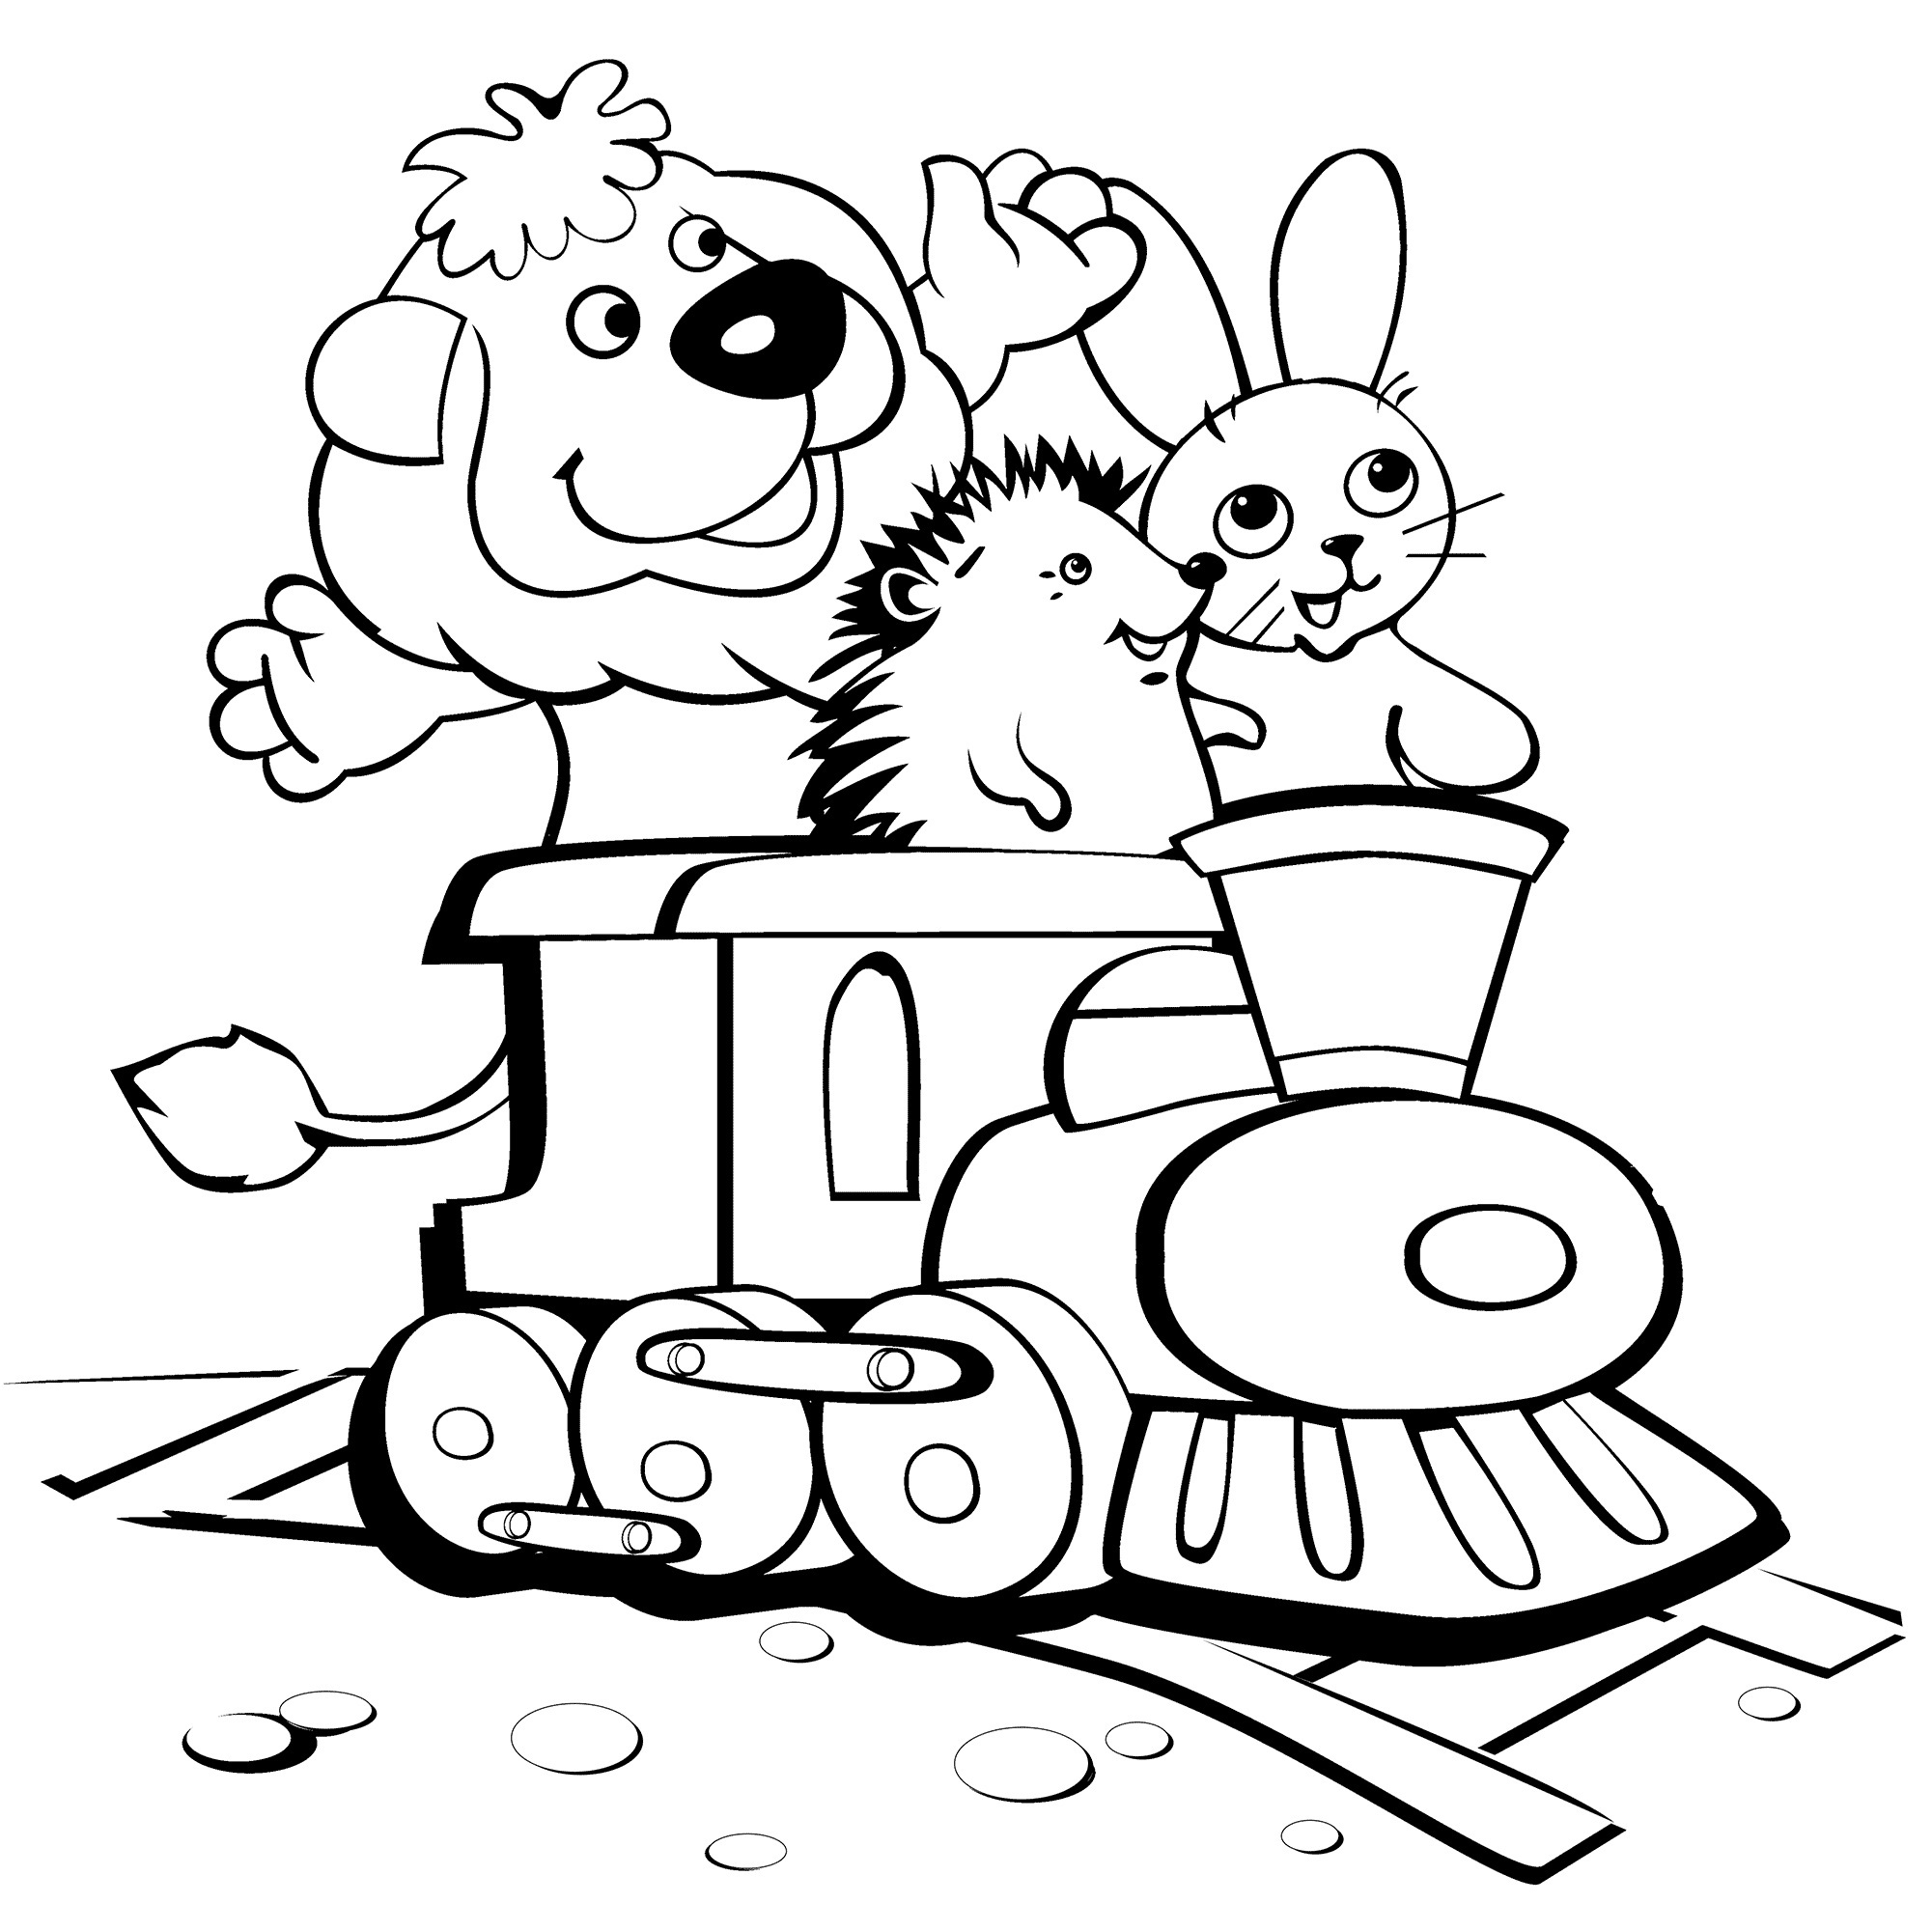 Free easter coloring pages for toddlers - Printable Funny Coloring Page